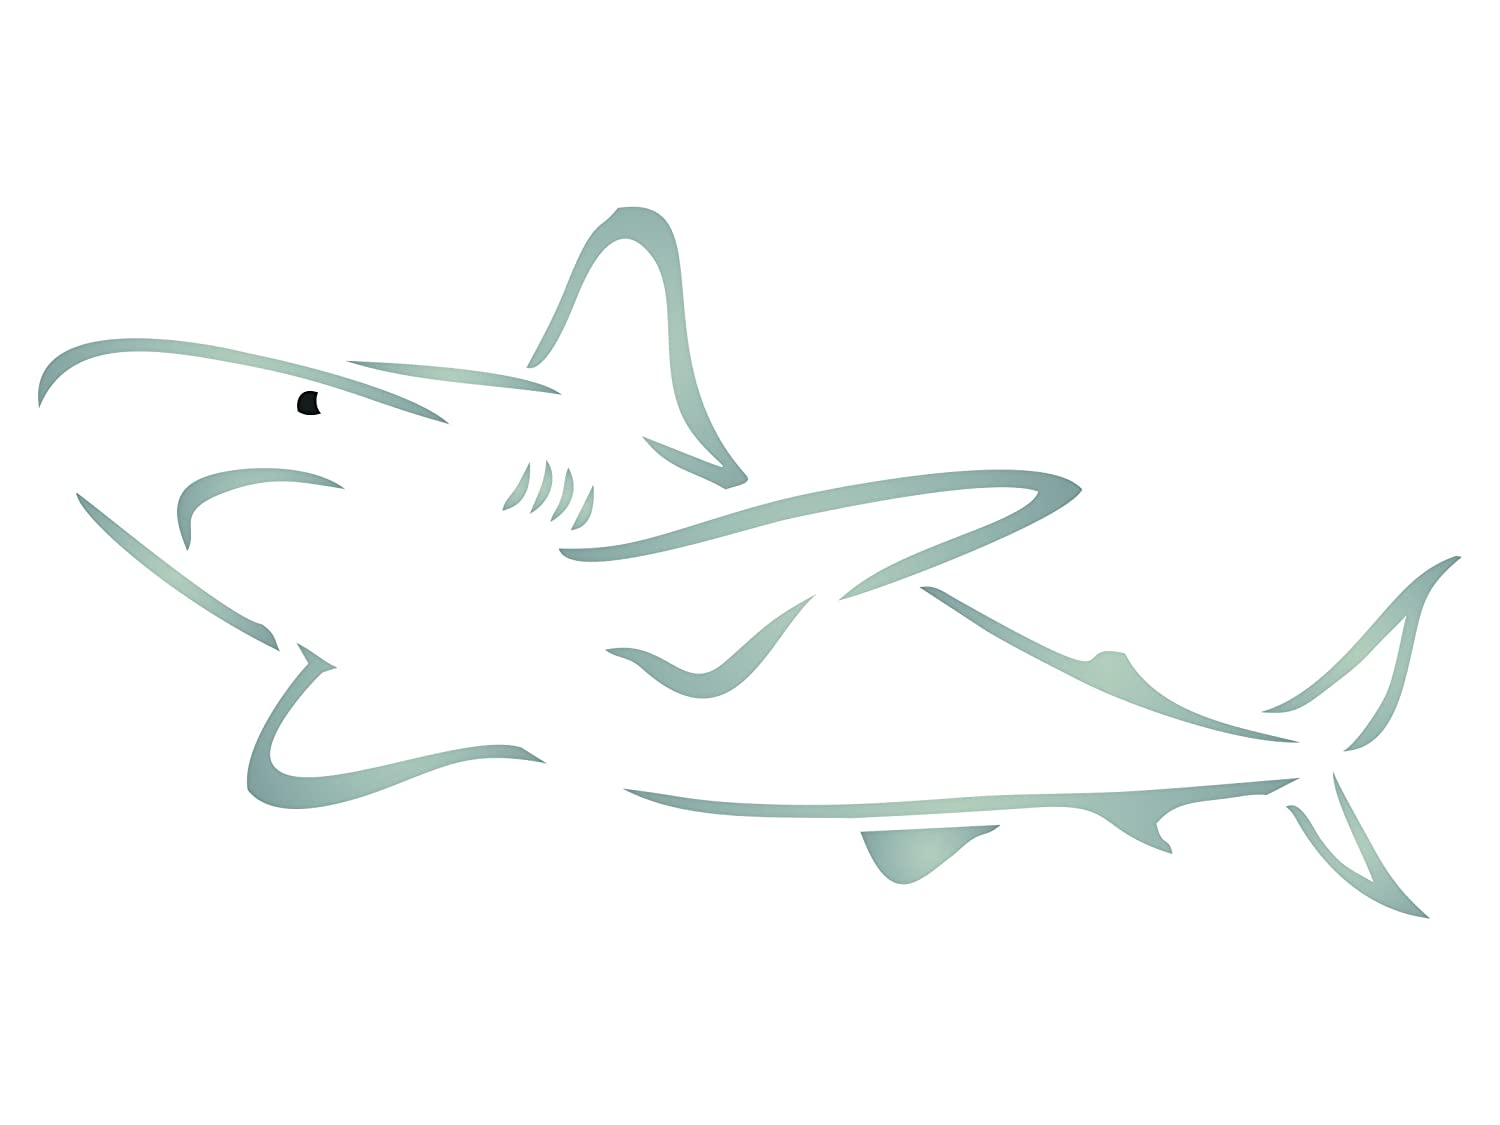 Shark Stencil - 12 x 6 inch (L) - Reusable Sea Ocean Nautical Seashore Reef Wall Stencils for Painting - Use on Paper Projects Scrapbook Journal Walls Floors Fabric Furniture Glass Wood etc.